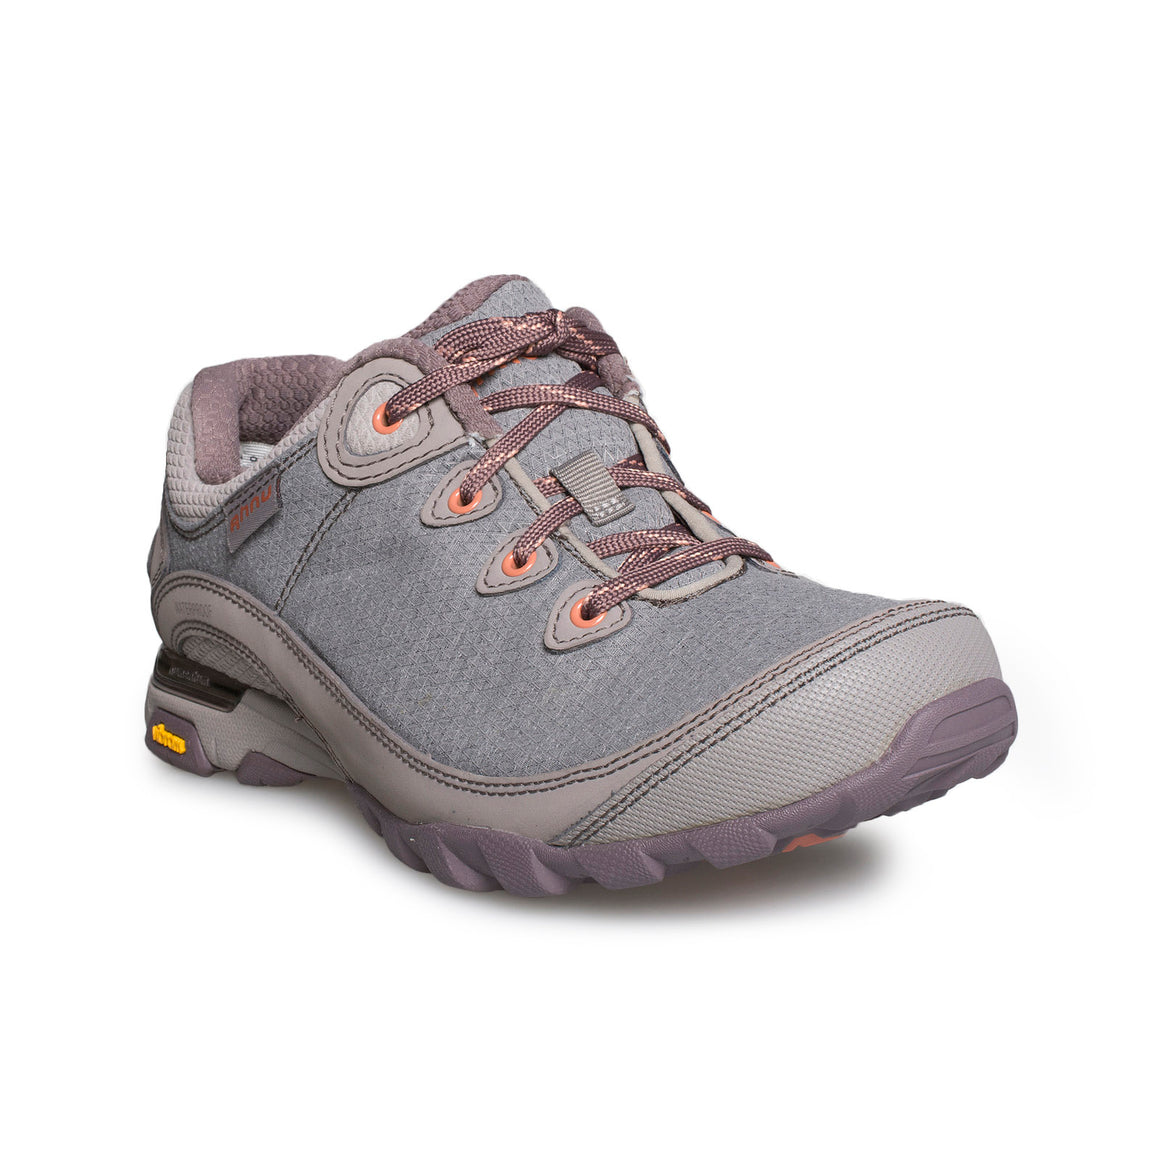 AHNU Sugarpine II WP Satellite Shoes - Women's